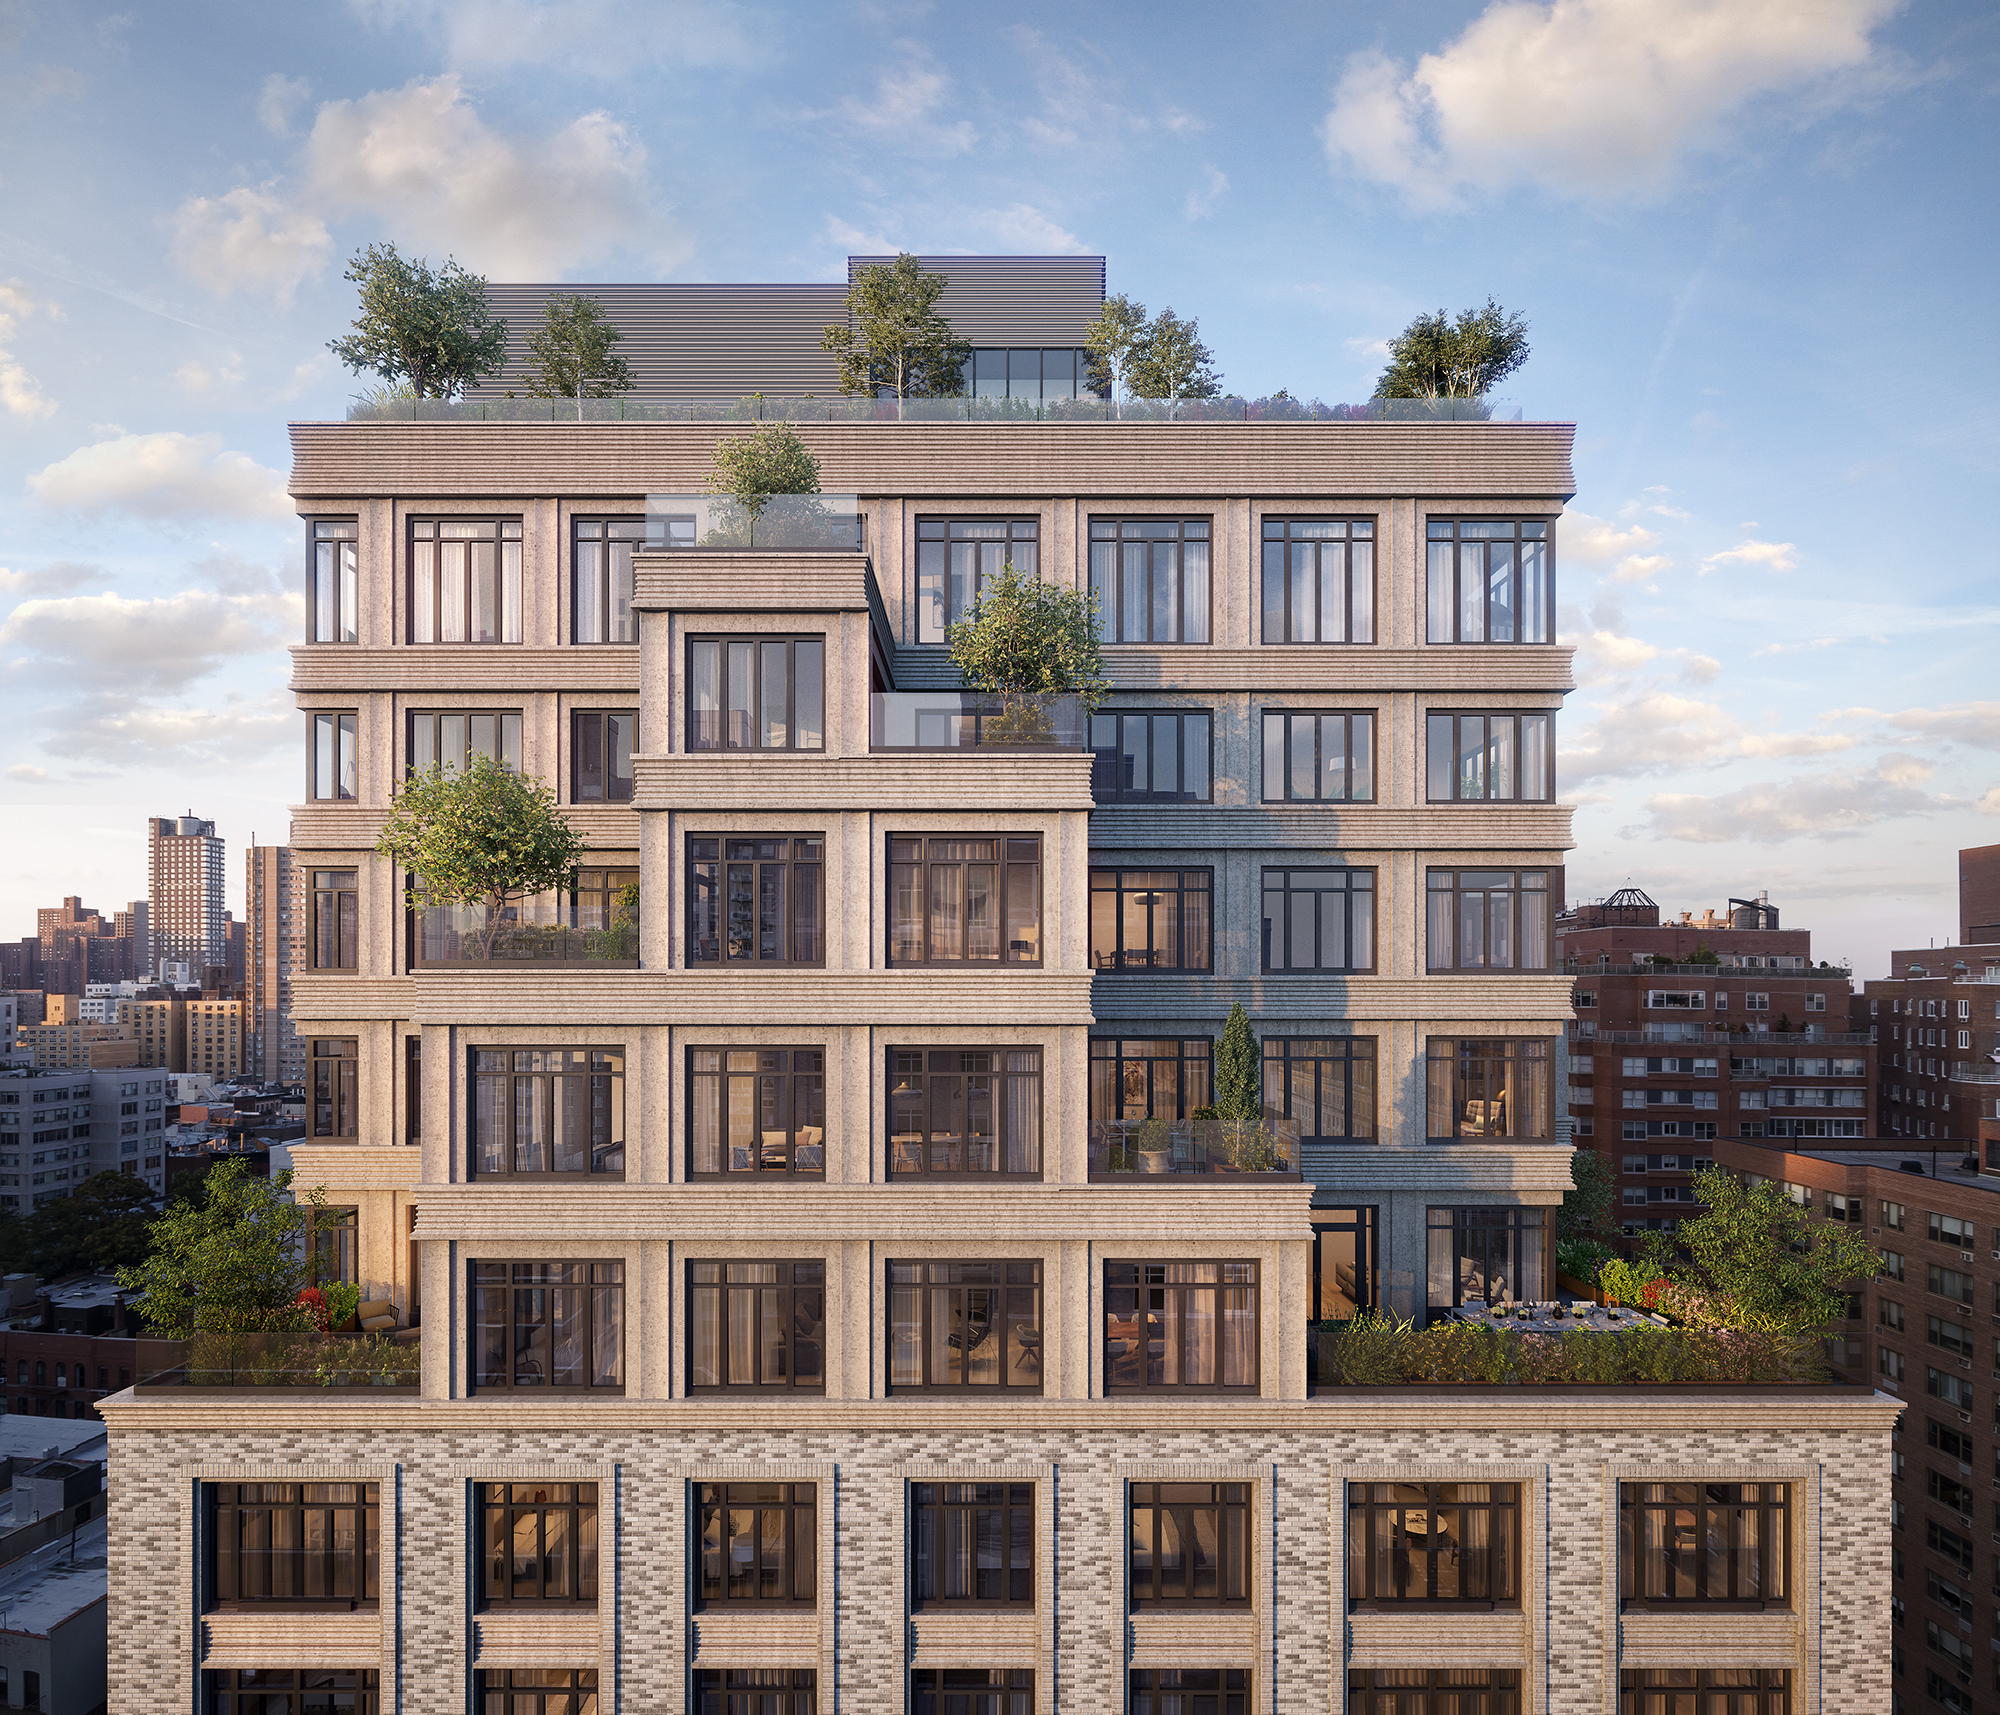 40 East End hummingbird view, rendering by Binyan Studios